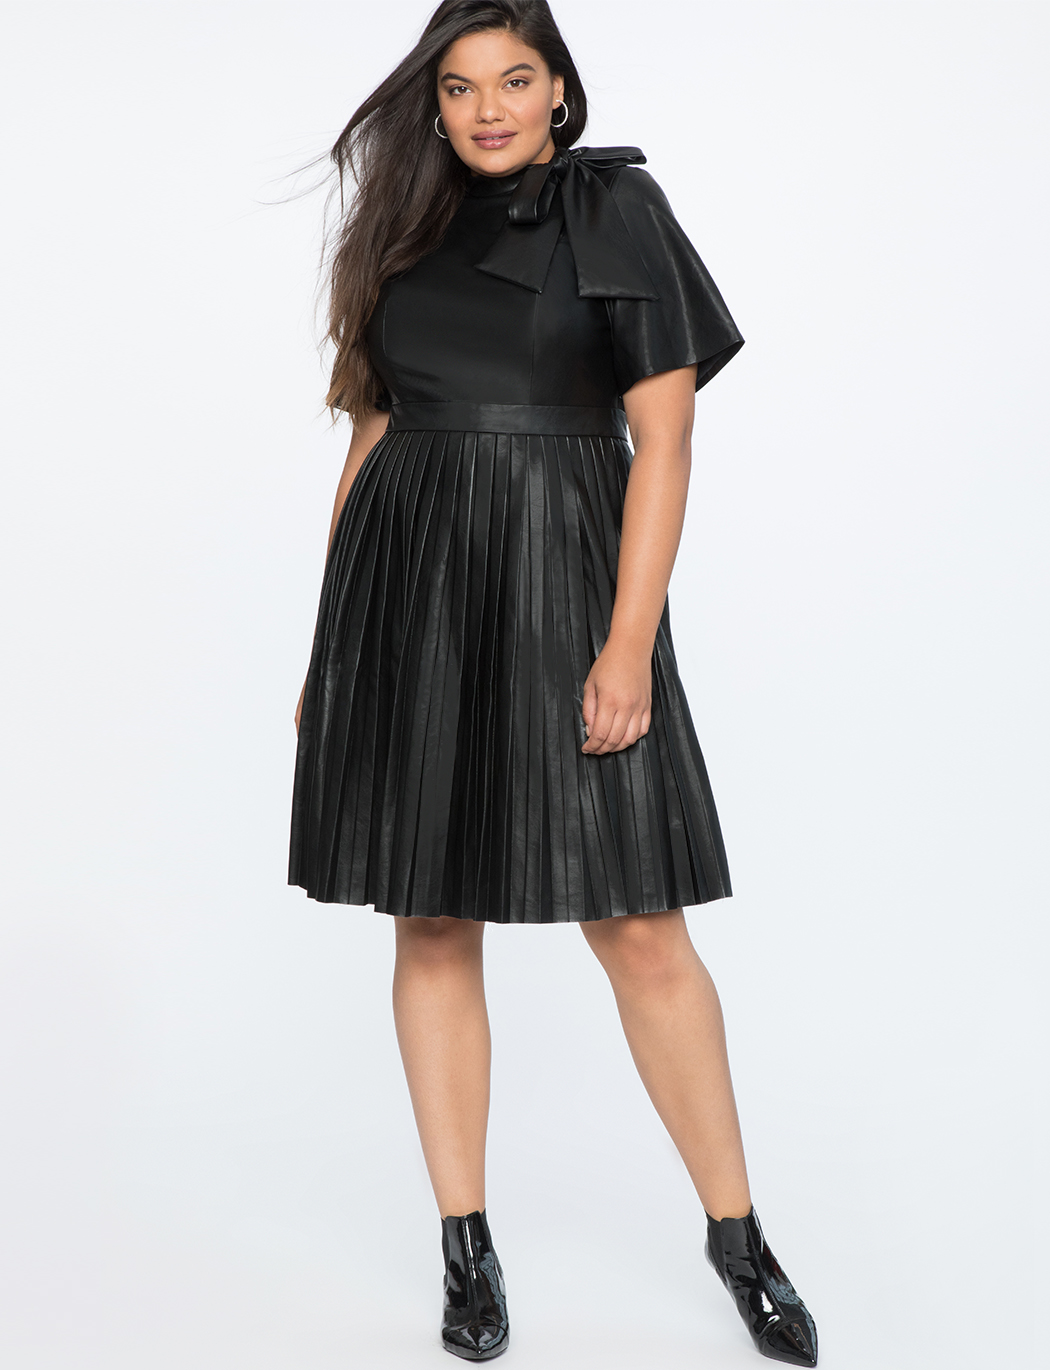 Plus Size Leather Dress – Fashion dresses